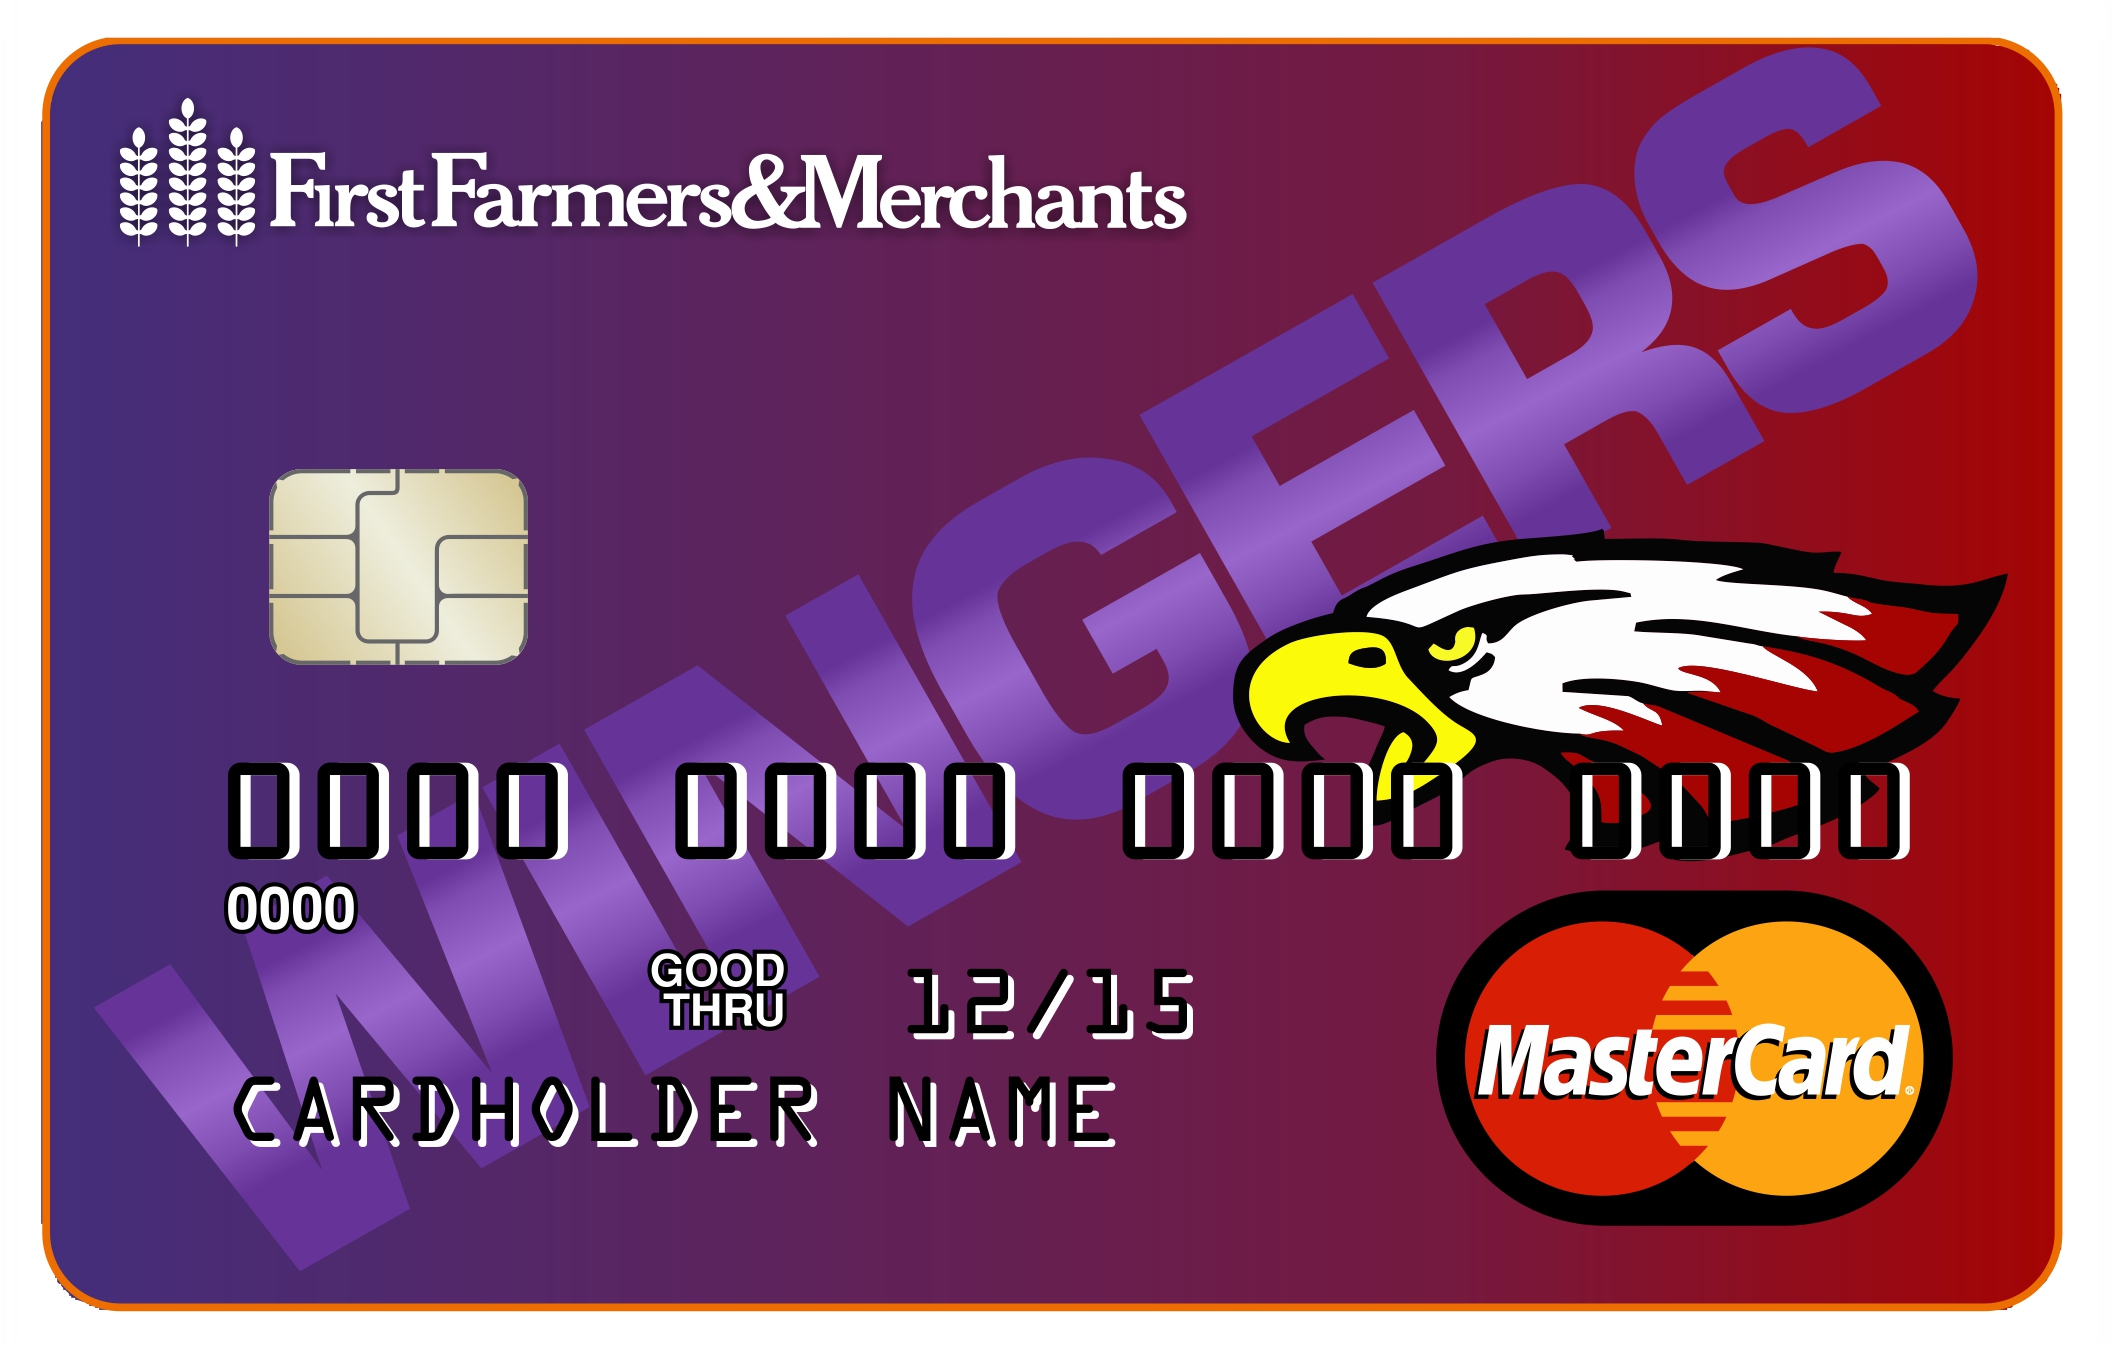 image of Red Wing Wingers debit card